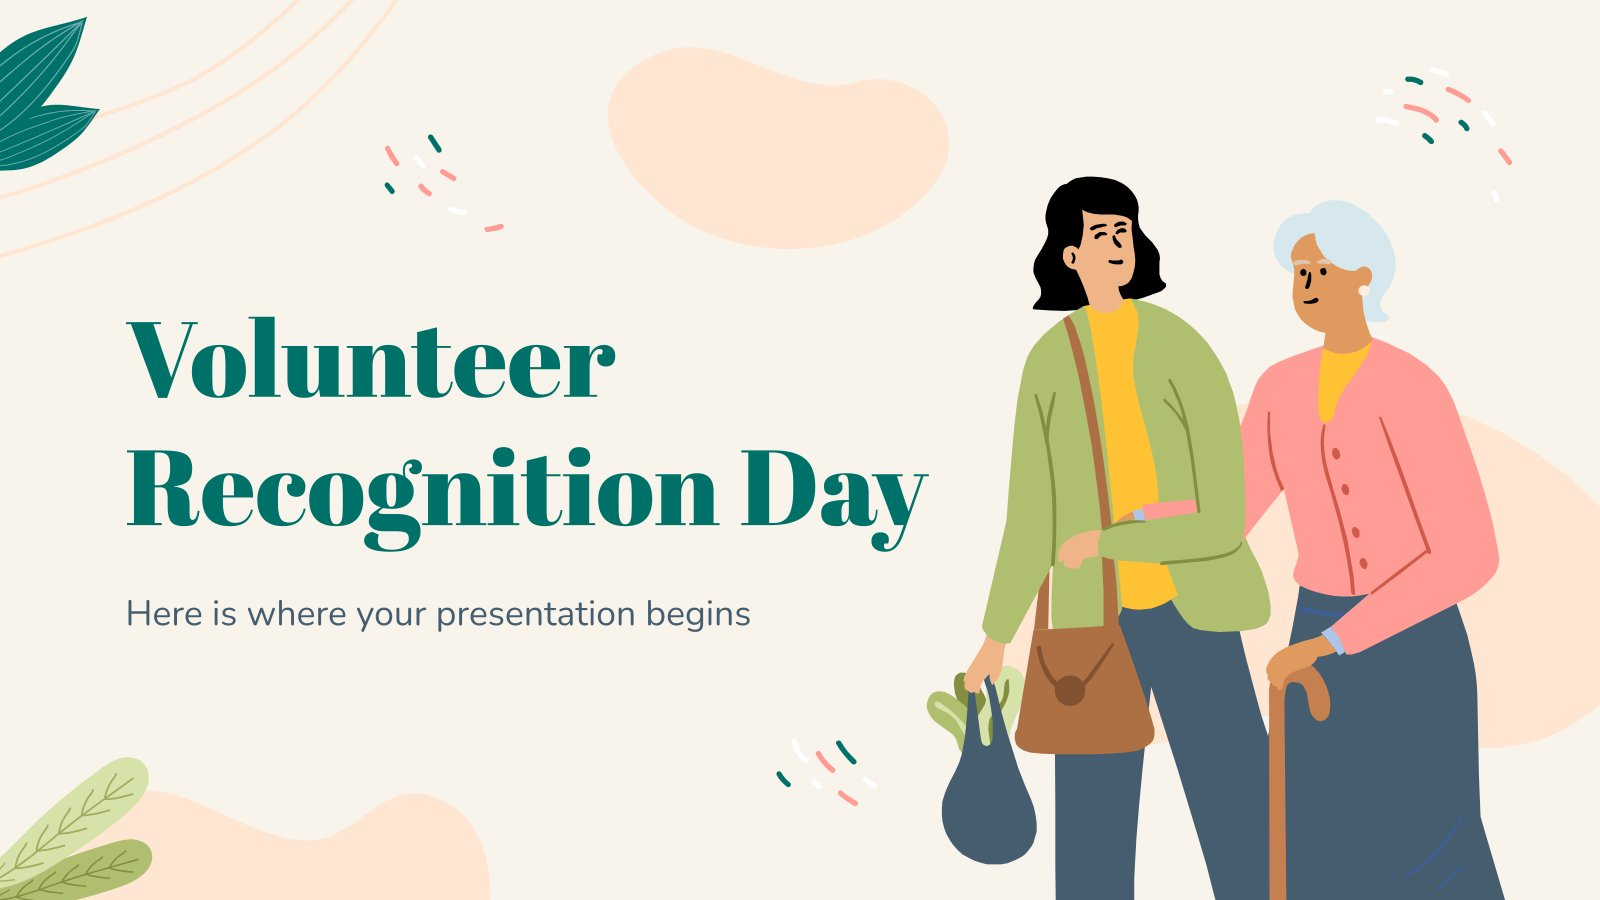 Volunteer Recognition Day presentation template